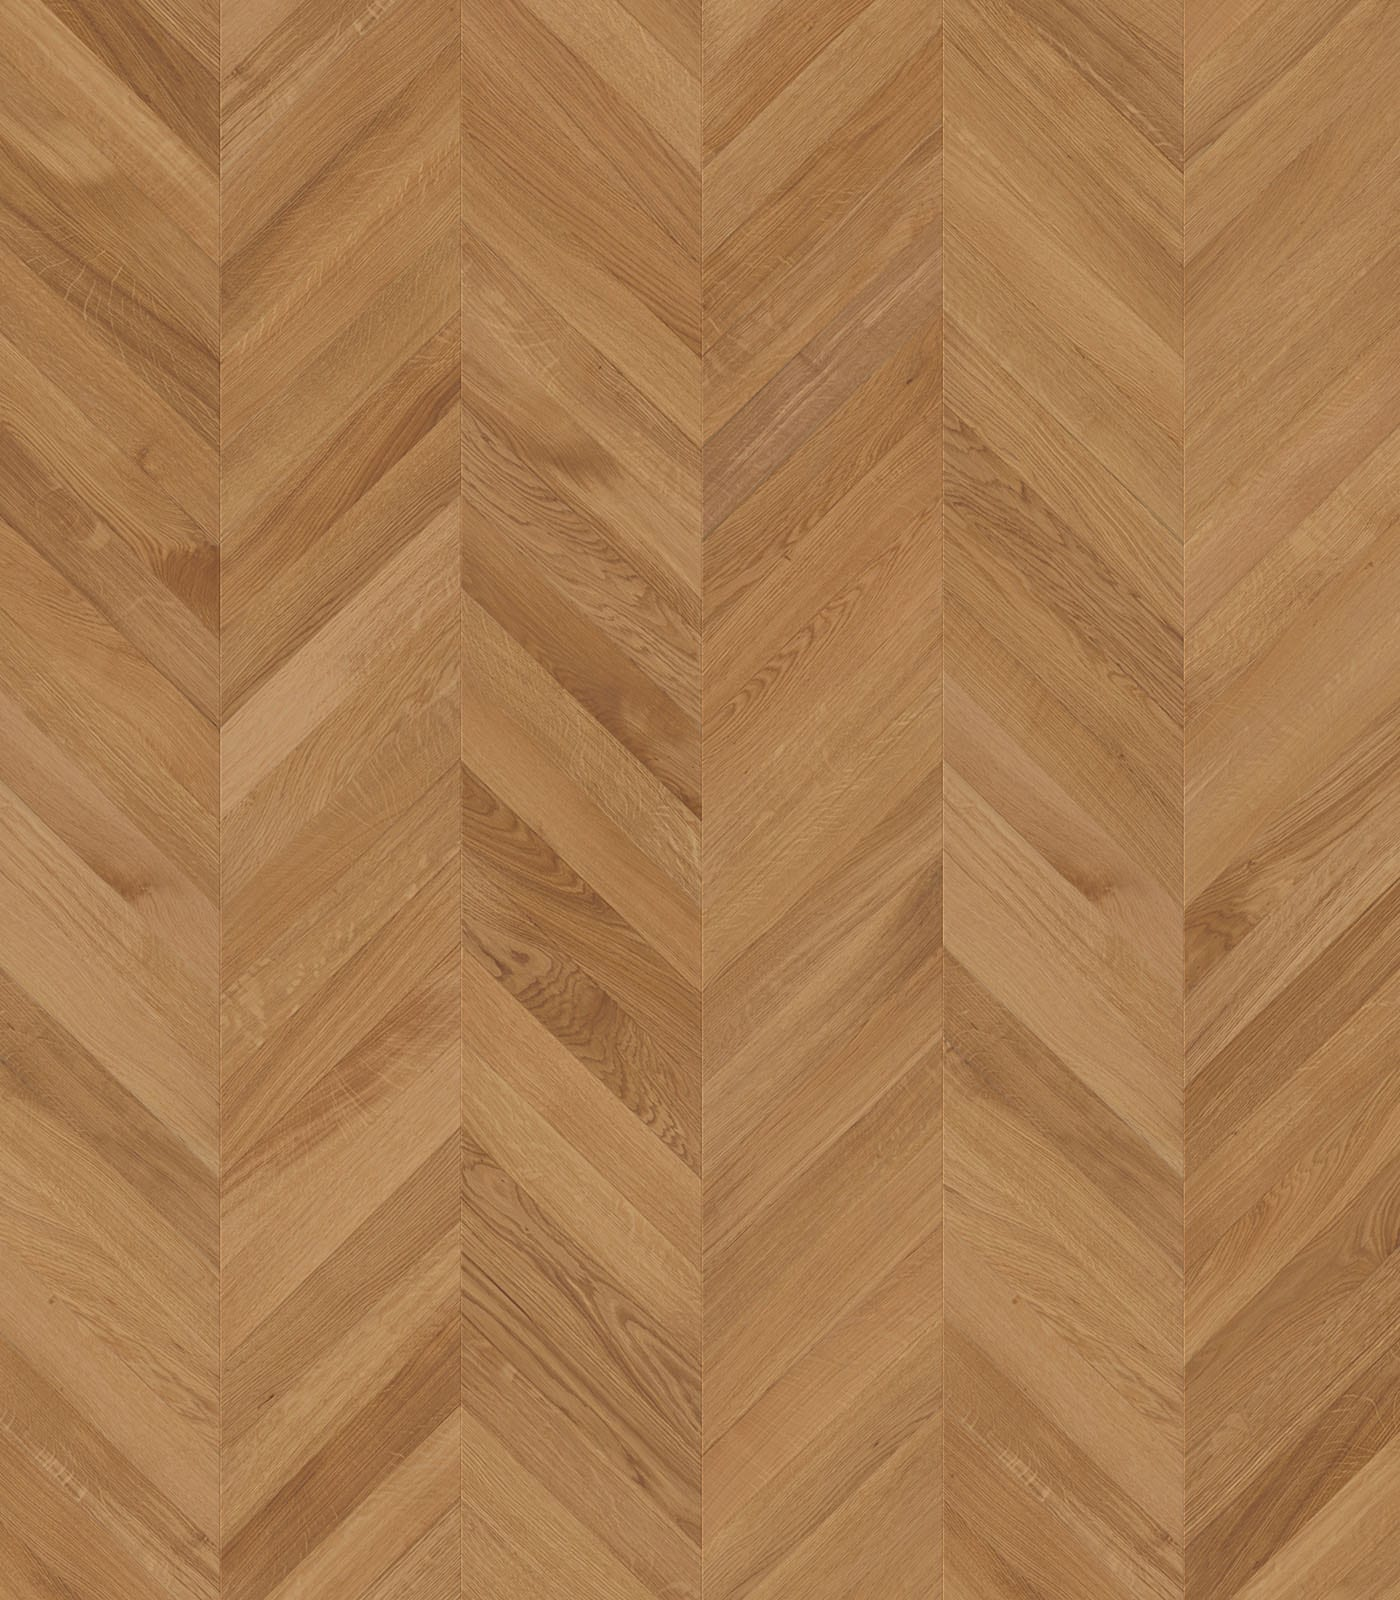 European Oak Chevron Connex floors-Fashion Collection-flat